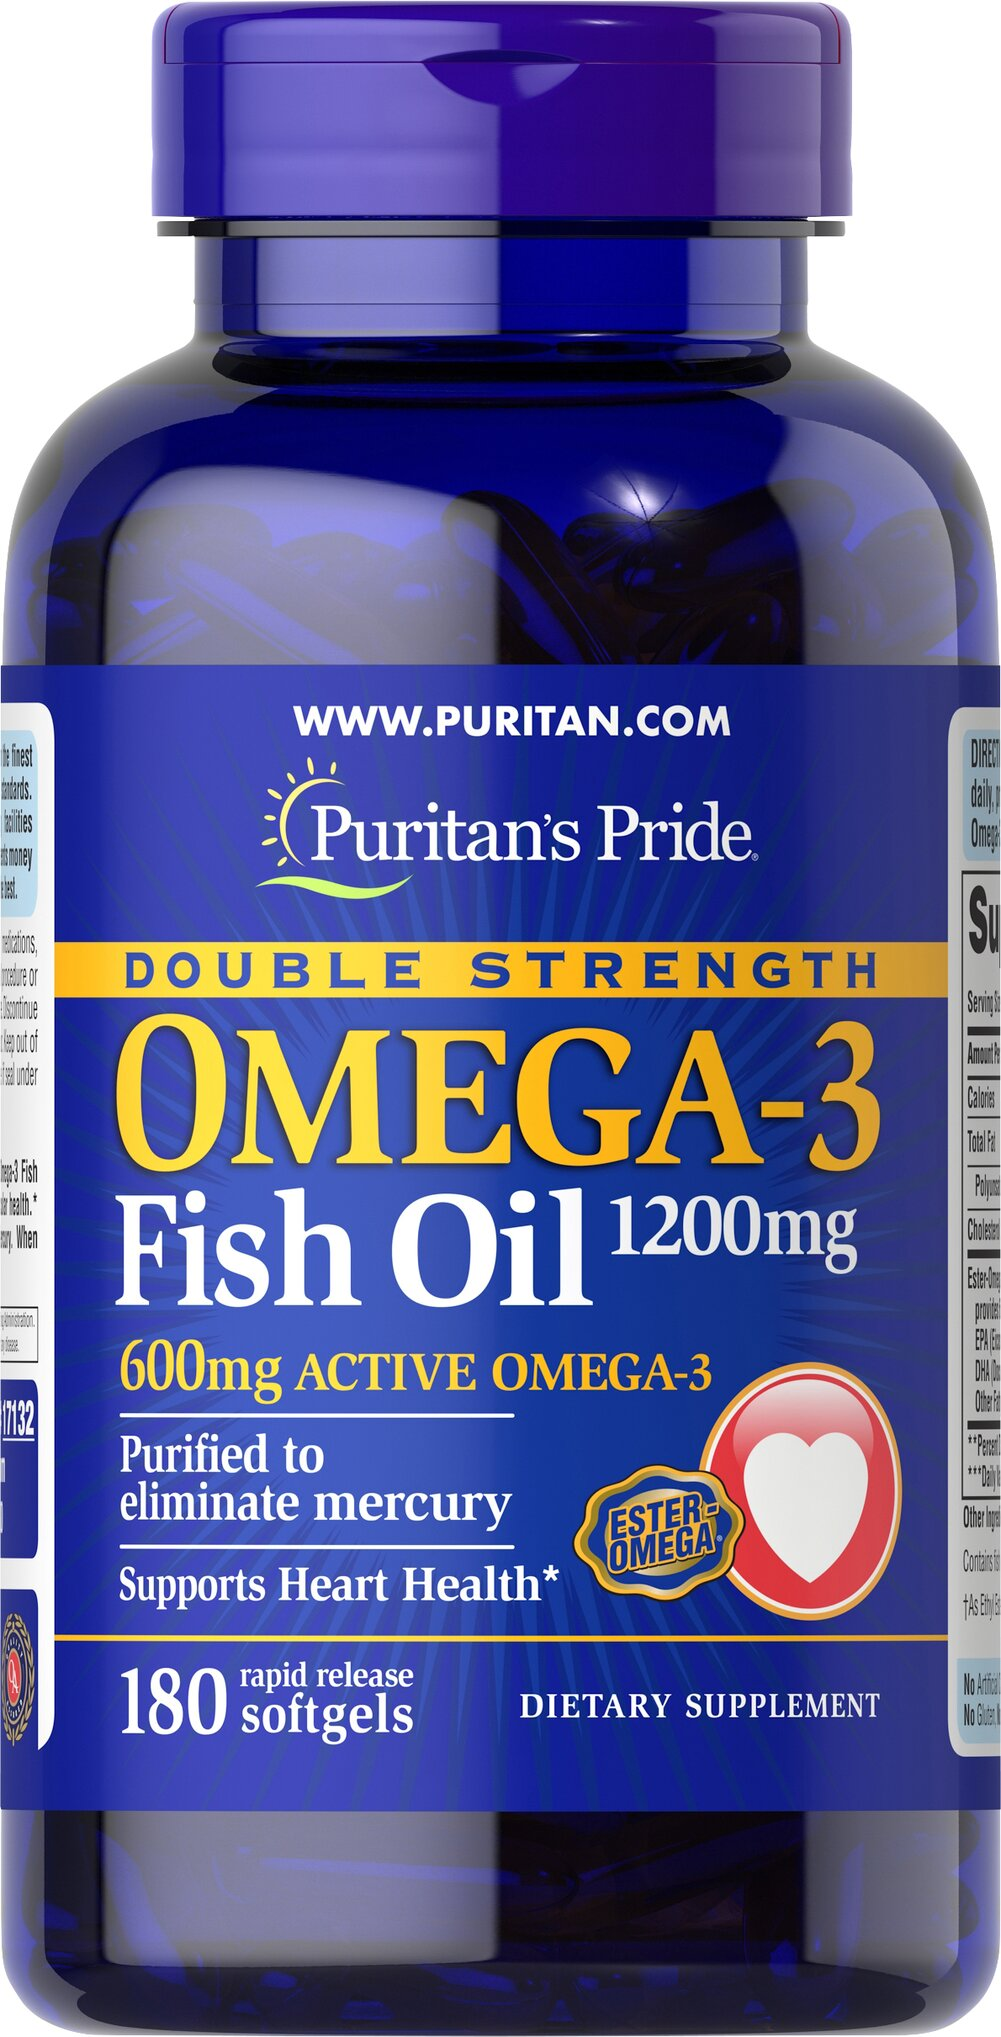 Double Strength Omega-3 Fish Oil 1200 mg <p><span></span>Provides 600 mg of Active Omega-3.</p><p><span></span>Omega-3 fatty acids are important for heart health.**</p><p><span></span>Purified to eliminate mercury.</p><p>Each double strength Omega-3 fish oil softgel contains 1200mg of Ester-Omega® Fish Oil. This provides 600 mg of Total Omega-3 Fatty Acids comprising of DHA, EPA and other fatty acids. Supportive b